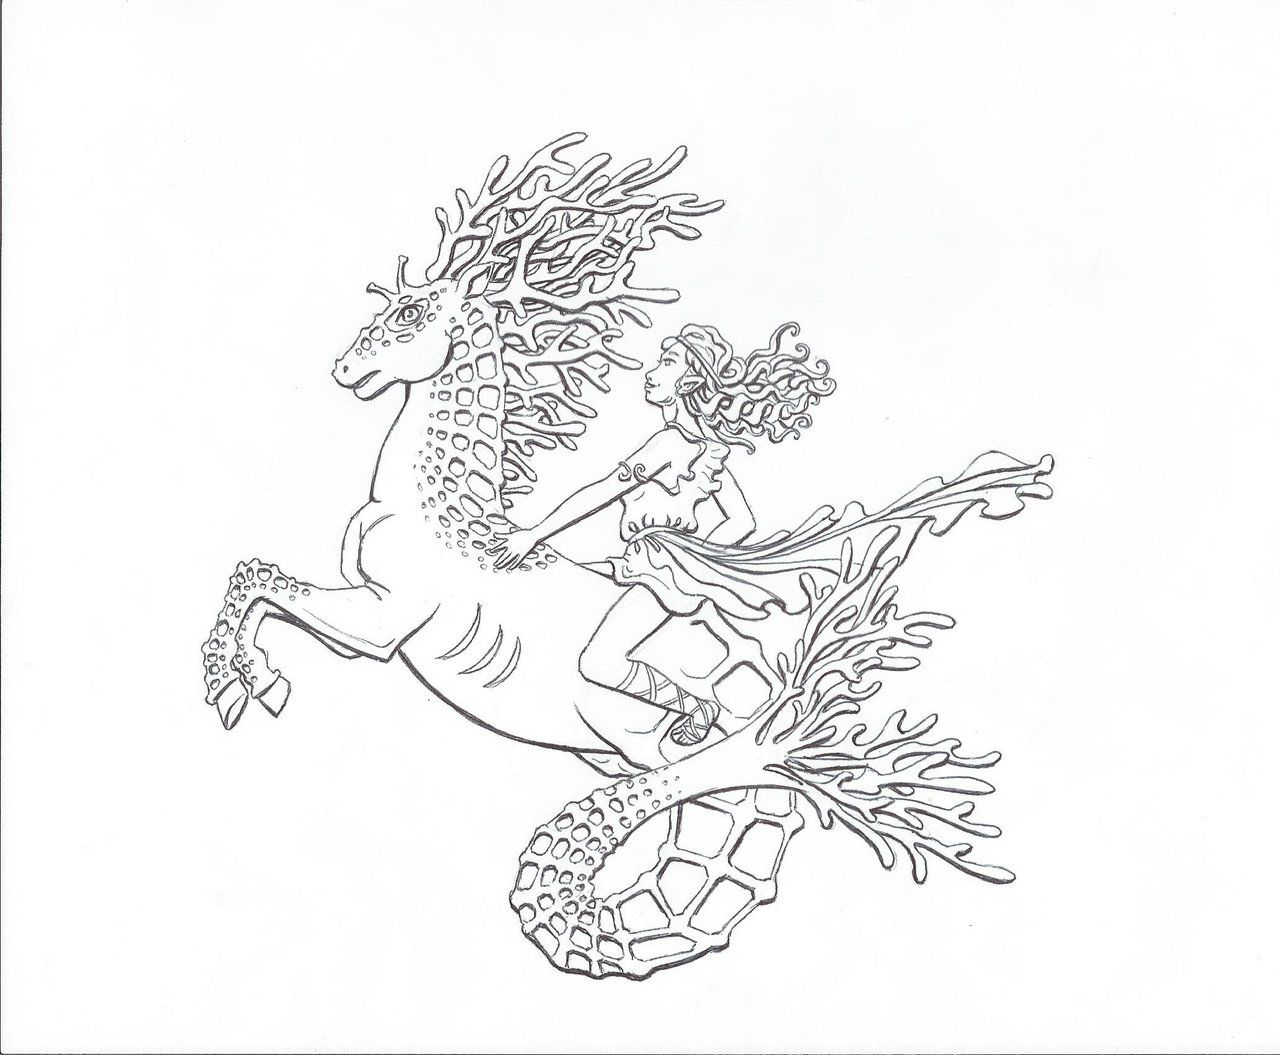 Hippocampus Rider Lineart By Xylinthia On Deviantart Coloring Pages Coloring Book Pages Coloring Books